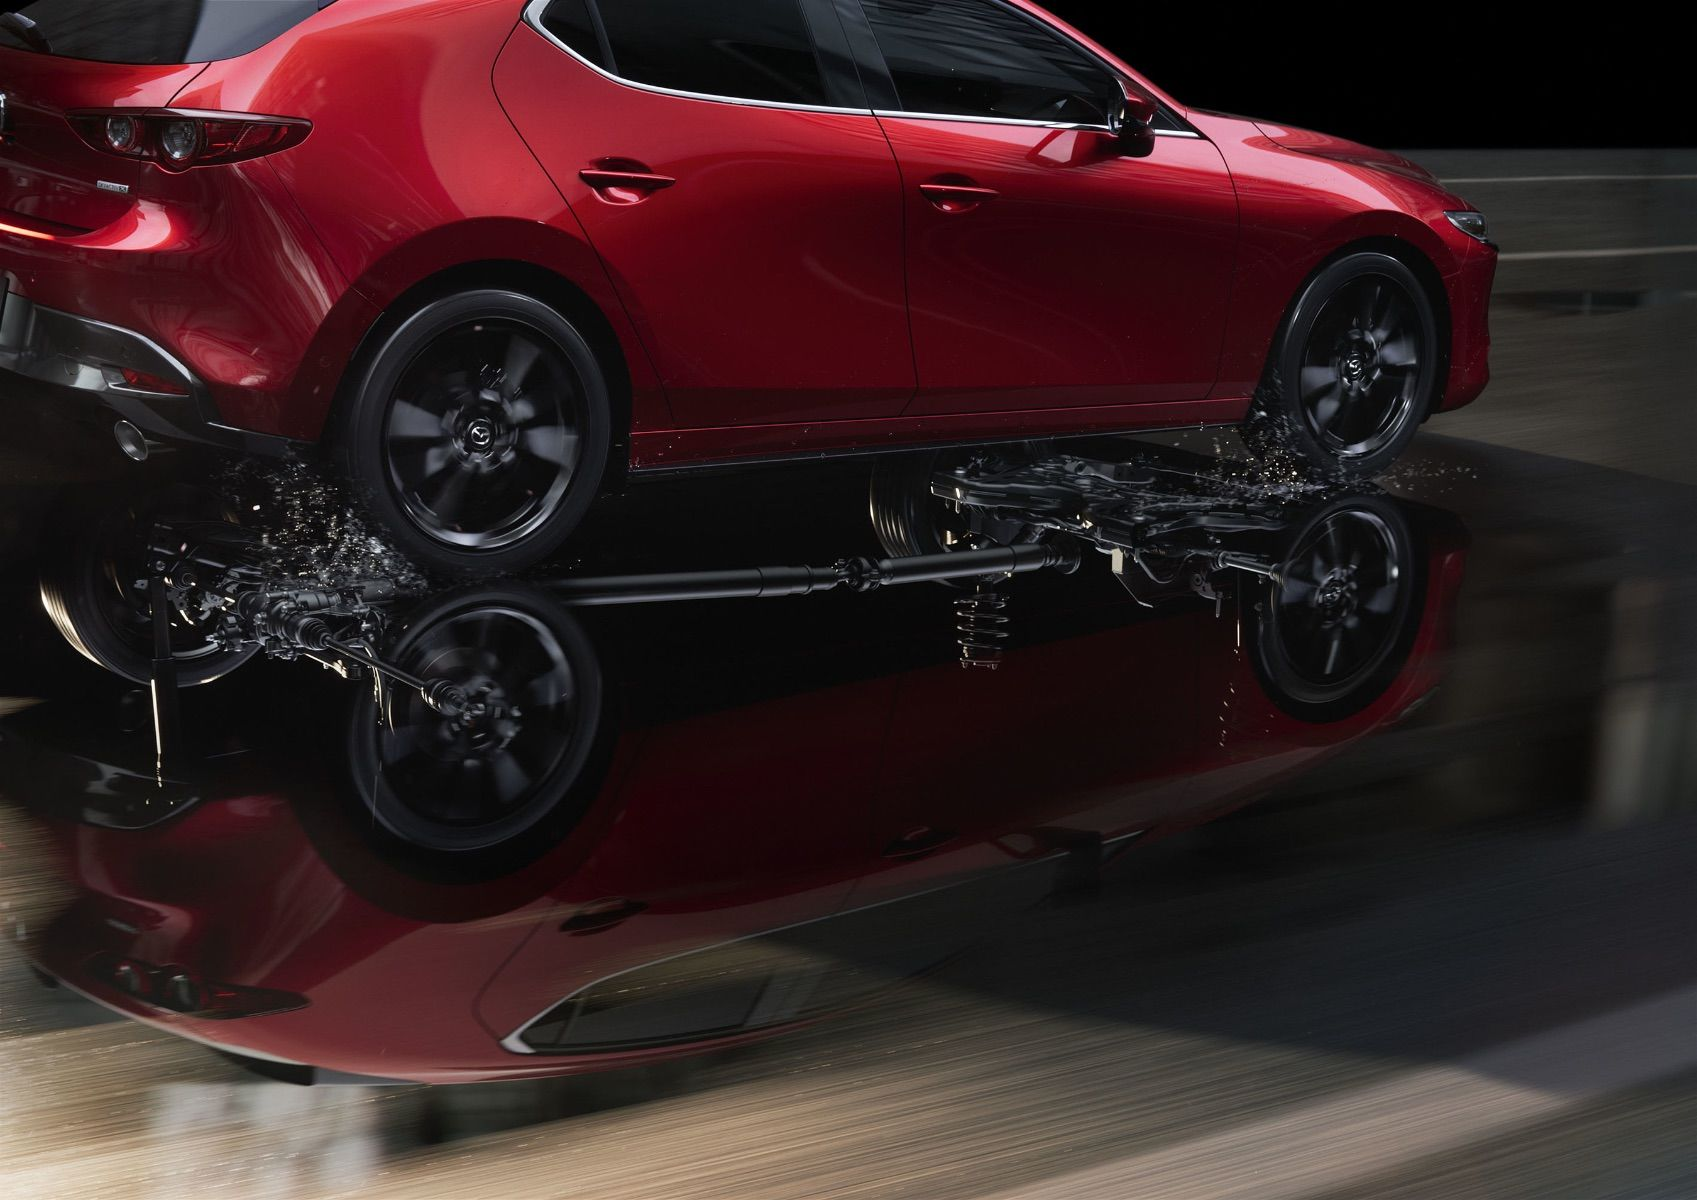 Here Are All The Ways You Can Configure Your 2019 Mazda 3 With All-Wheel Drive